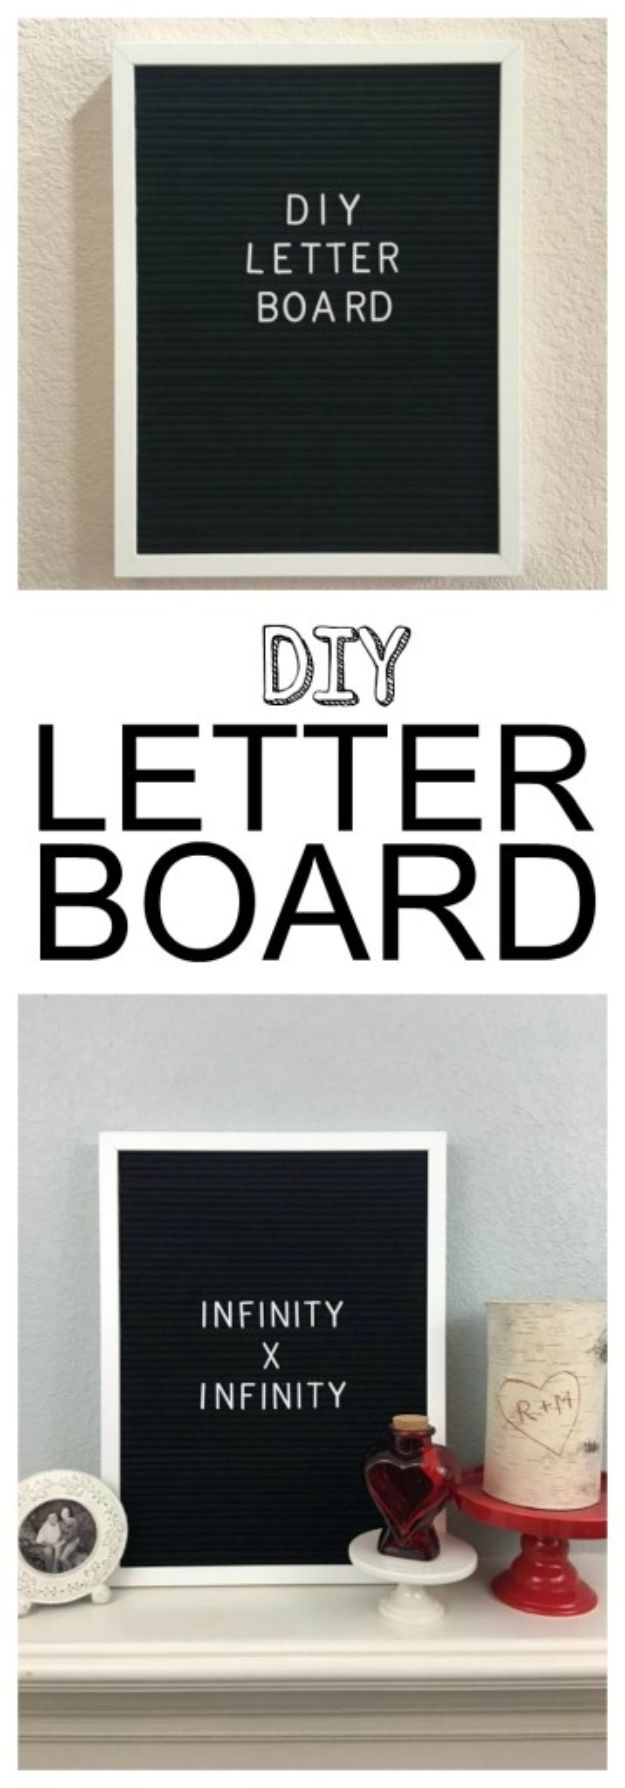 DIY Bedroom Decor Ideas - DIY Letter Board - Easy Room Decor Projects for The Home - Cheap Farmhouse Crafts, Wall Art Idea, Bed and Bedding, Furniture